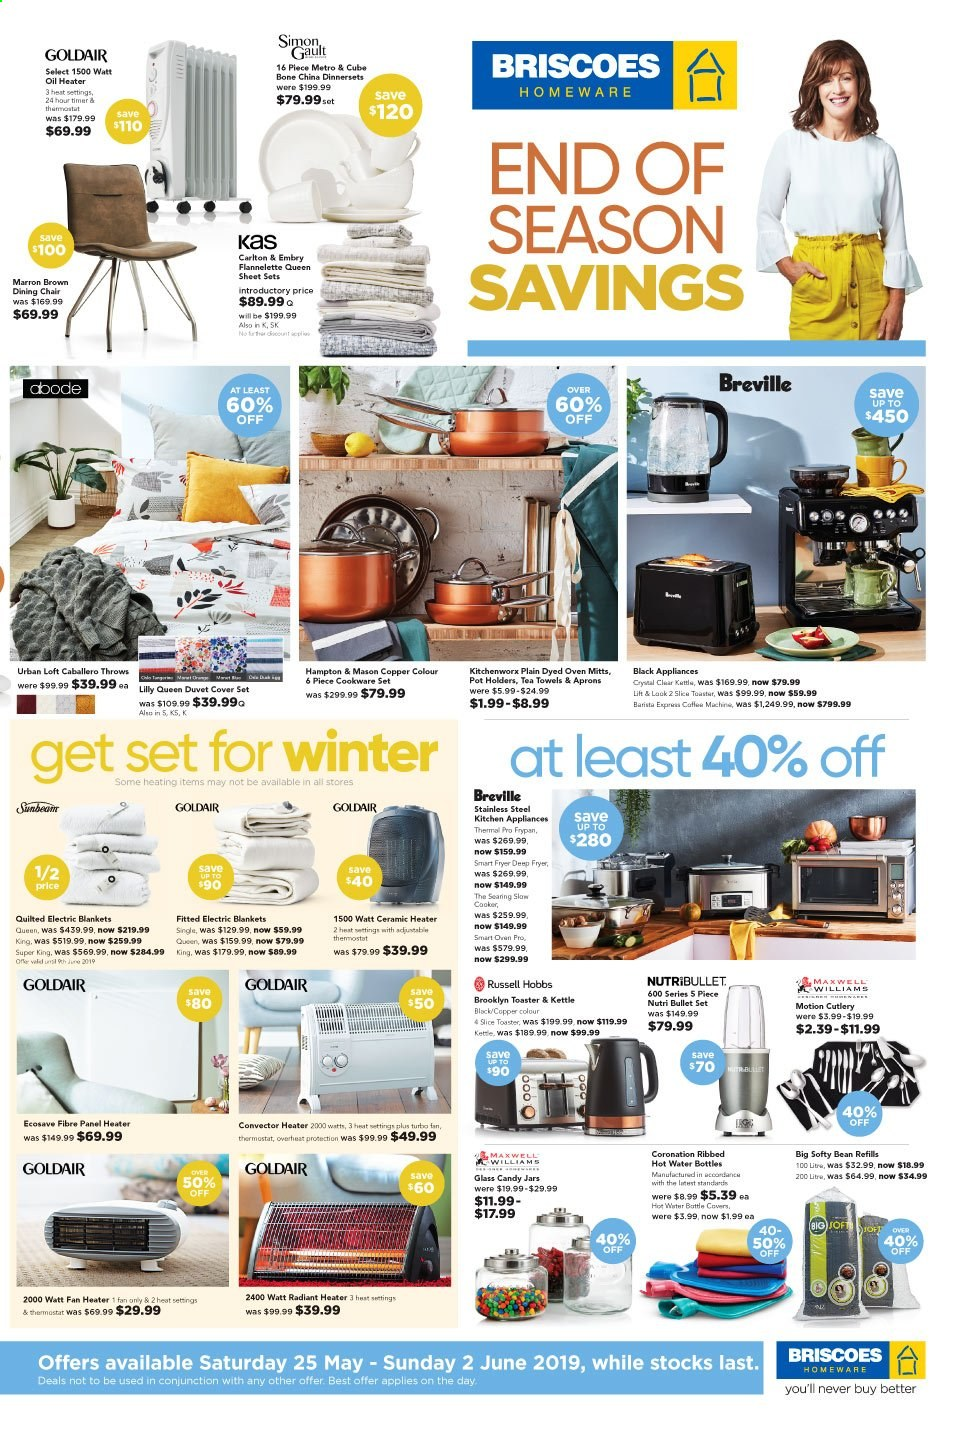 Briscoes mailer - 25.05.2019 - 02.06.2019 - Sales products - chair, Lack, cookware set, pot, oven mitt, frypan, tea towels, blanket, duvet, sheet, queen sheet, towel, oven, fryer, NutriBullet, Russell Hobbs, toaster, kettle, electric blanket, heater, fan heater. Page 1.